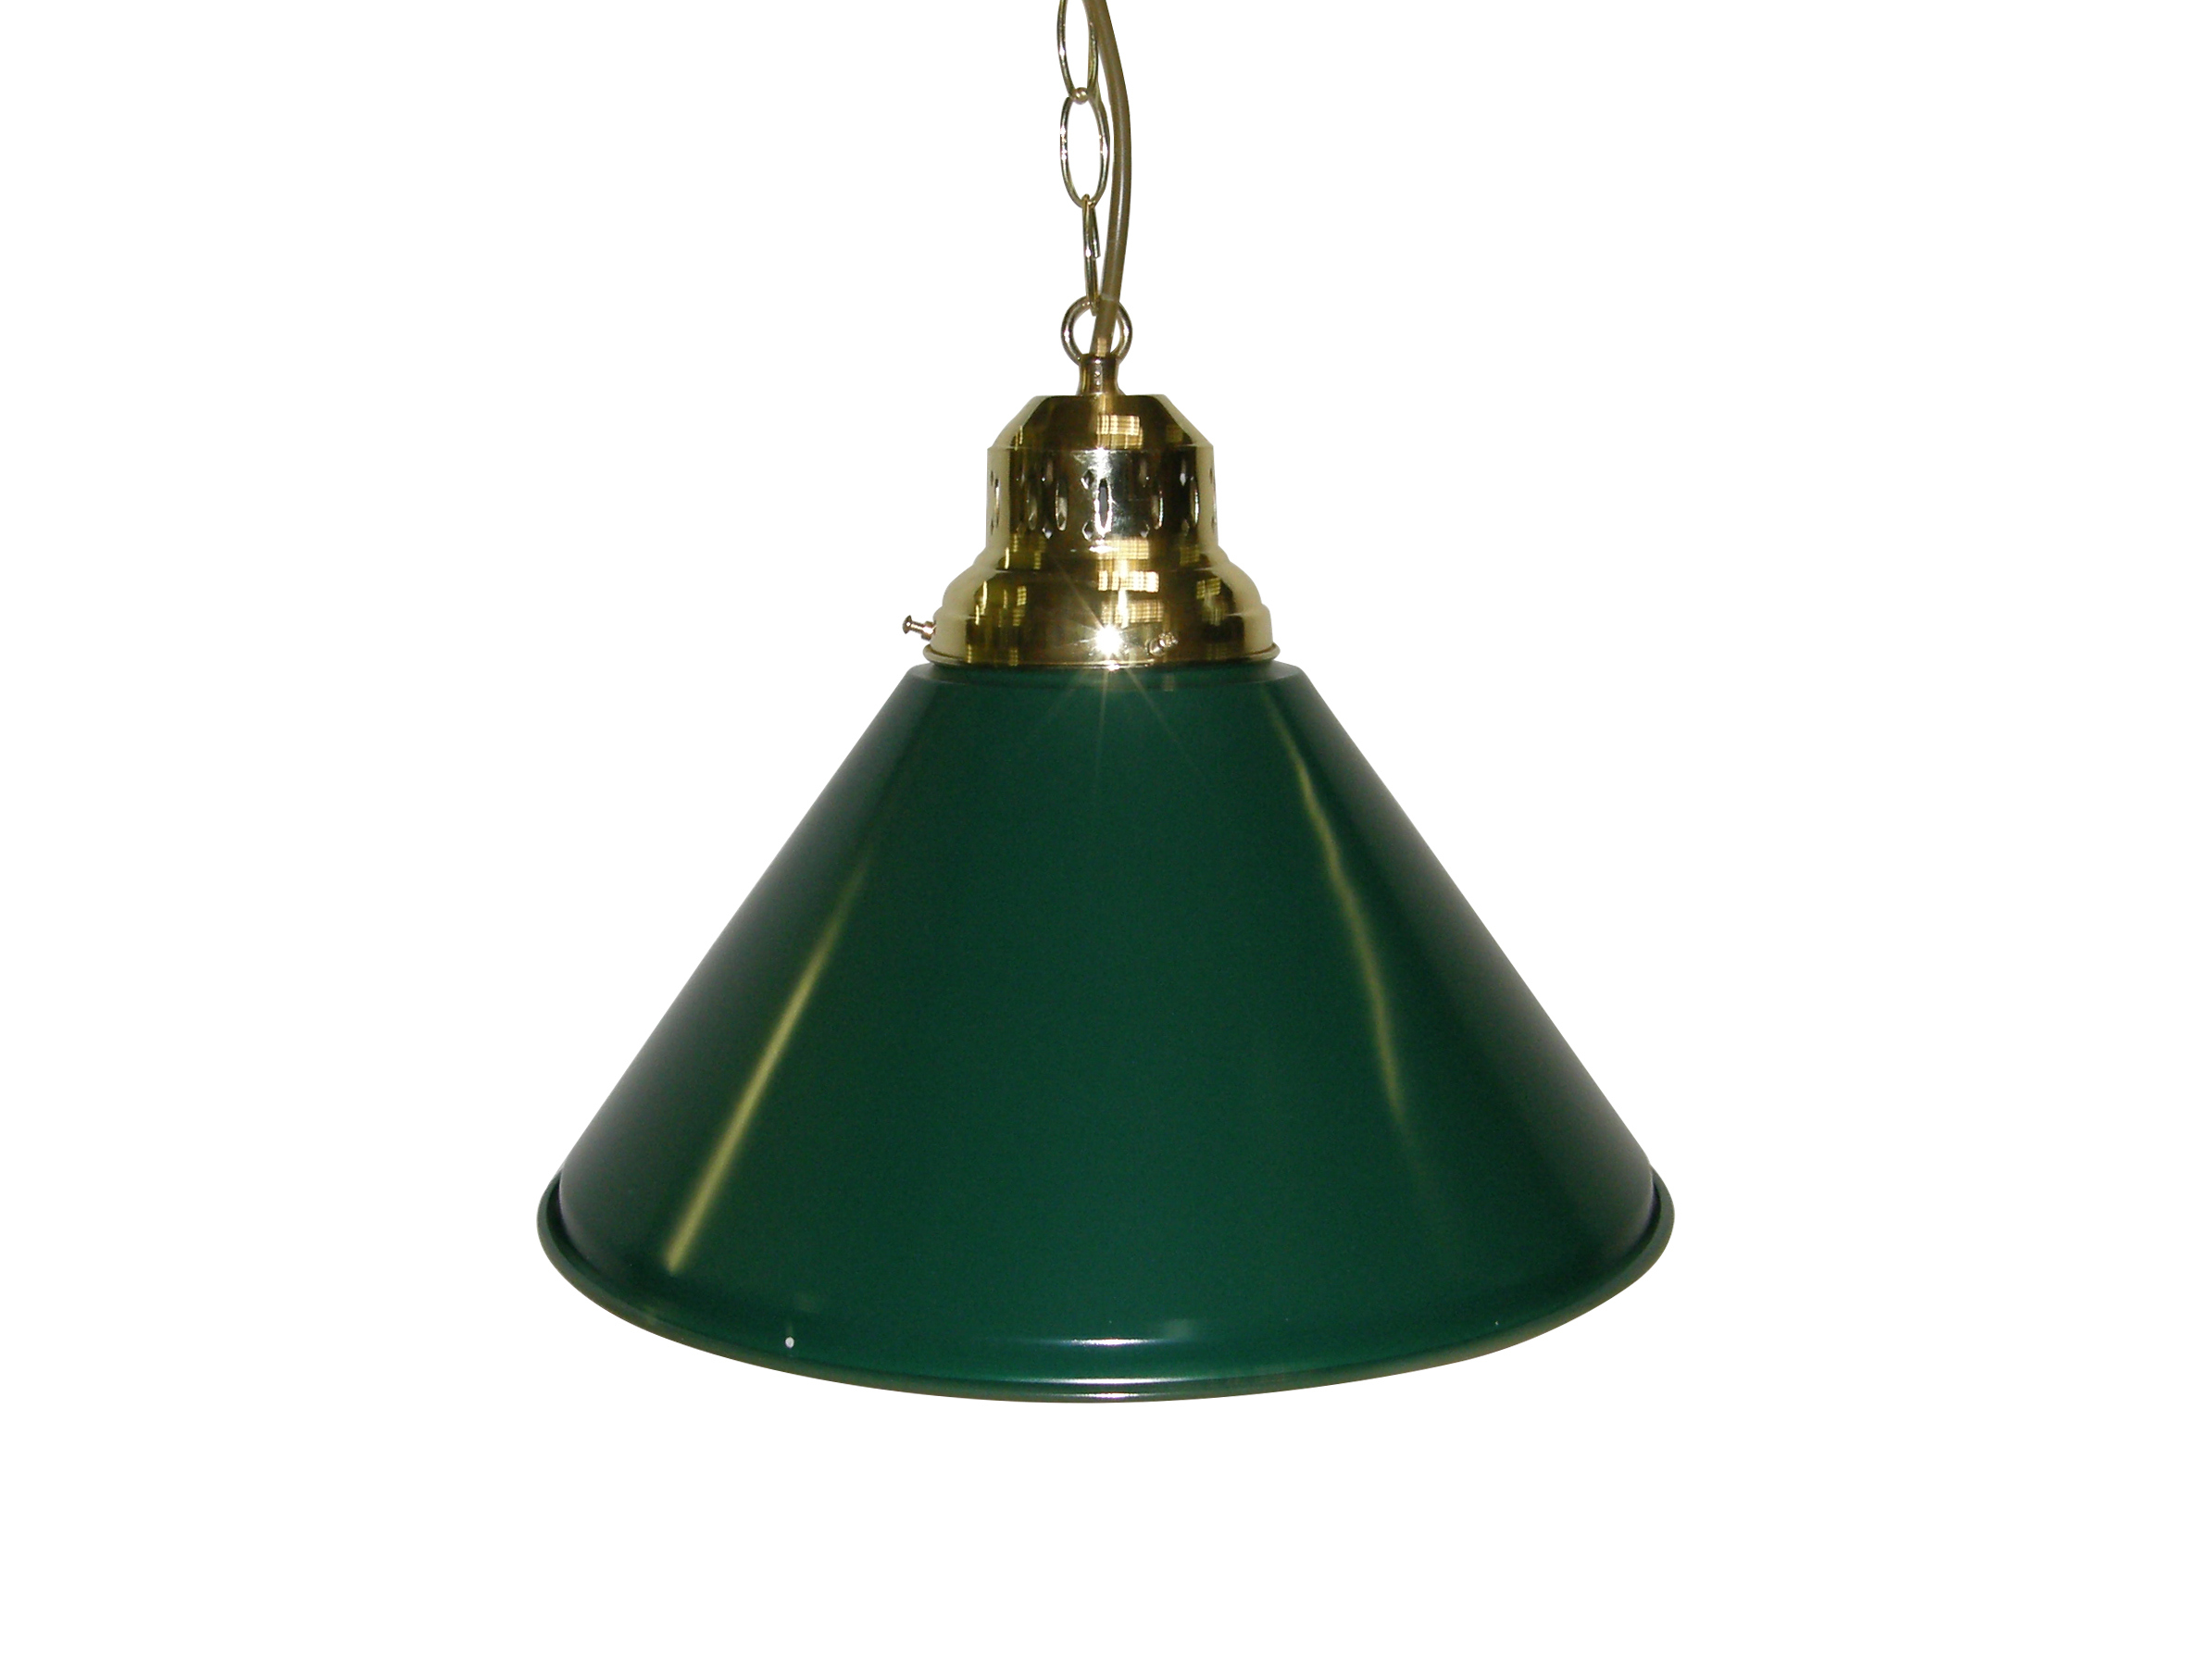 Game Room- Bar Billiard Pool Table Light Pendant Brass W Metal Green Shade by